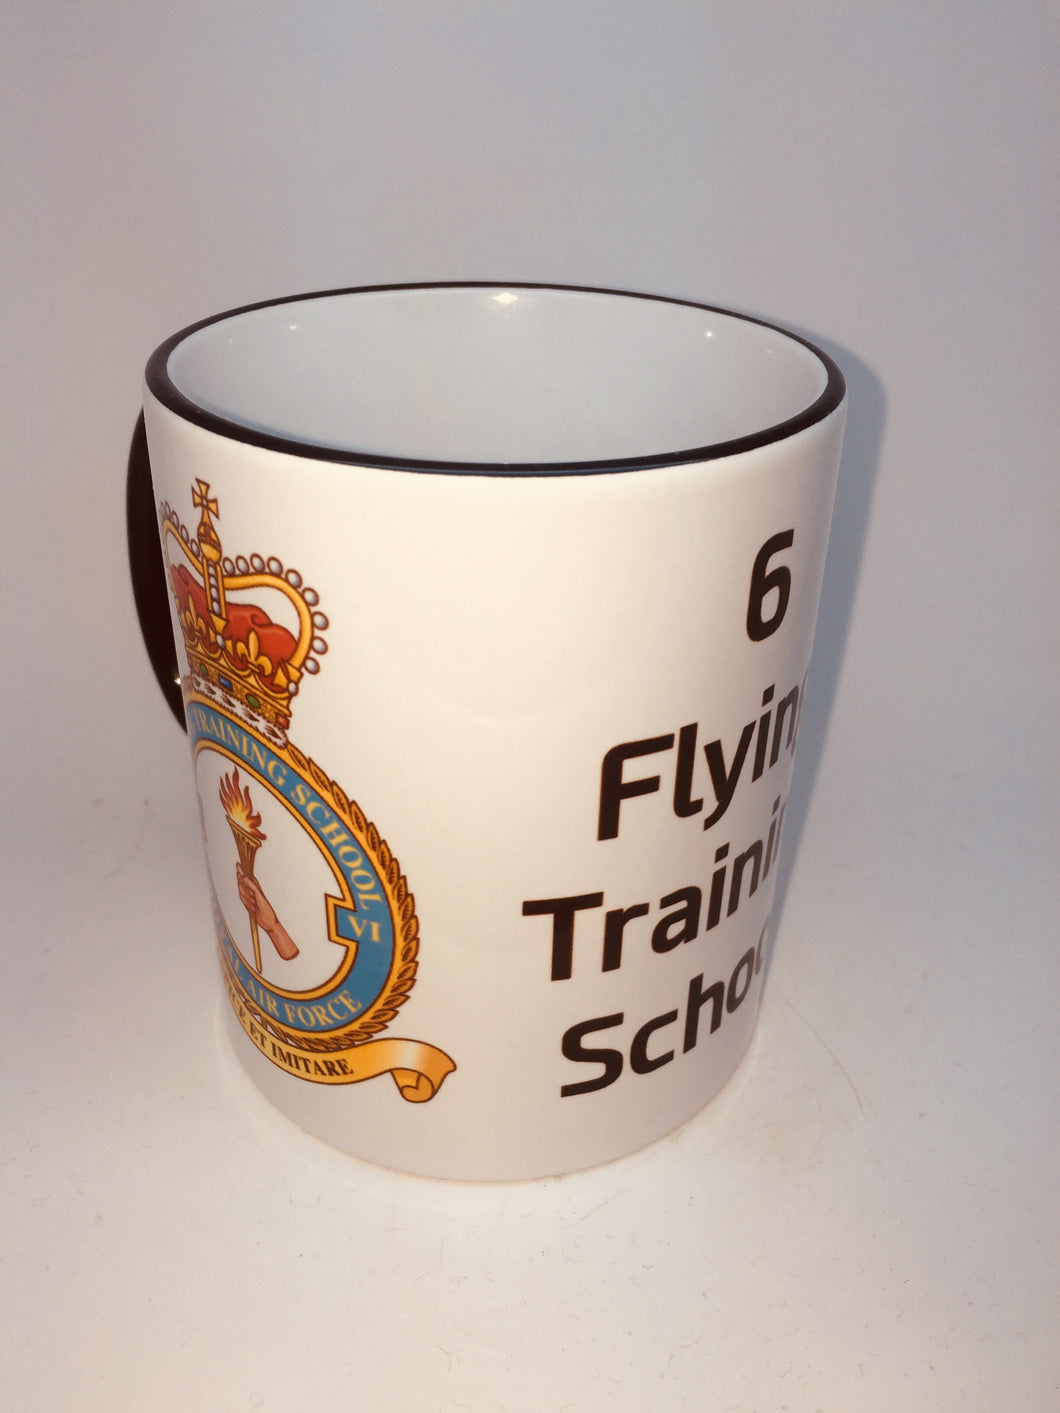 6 Flying Training School Coffee/Travel Mug